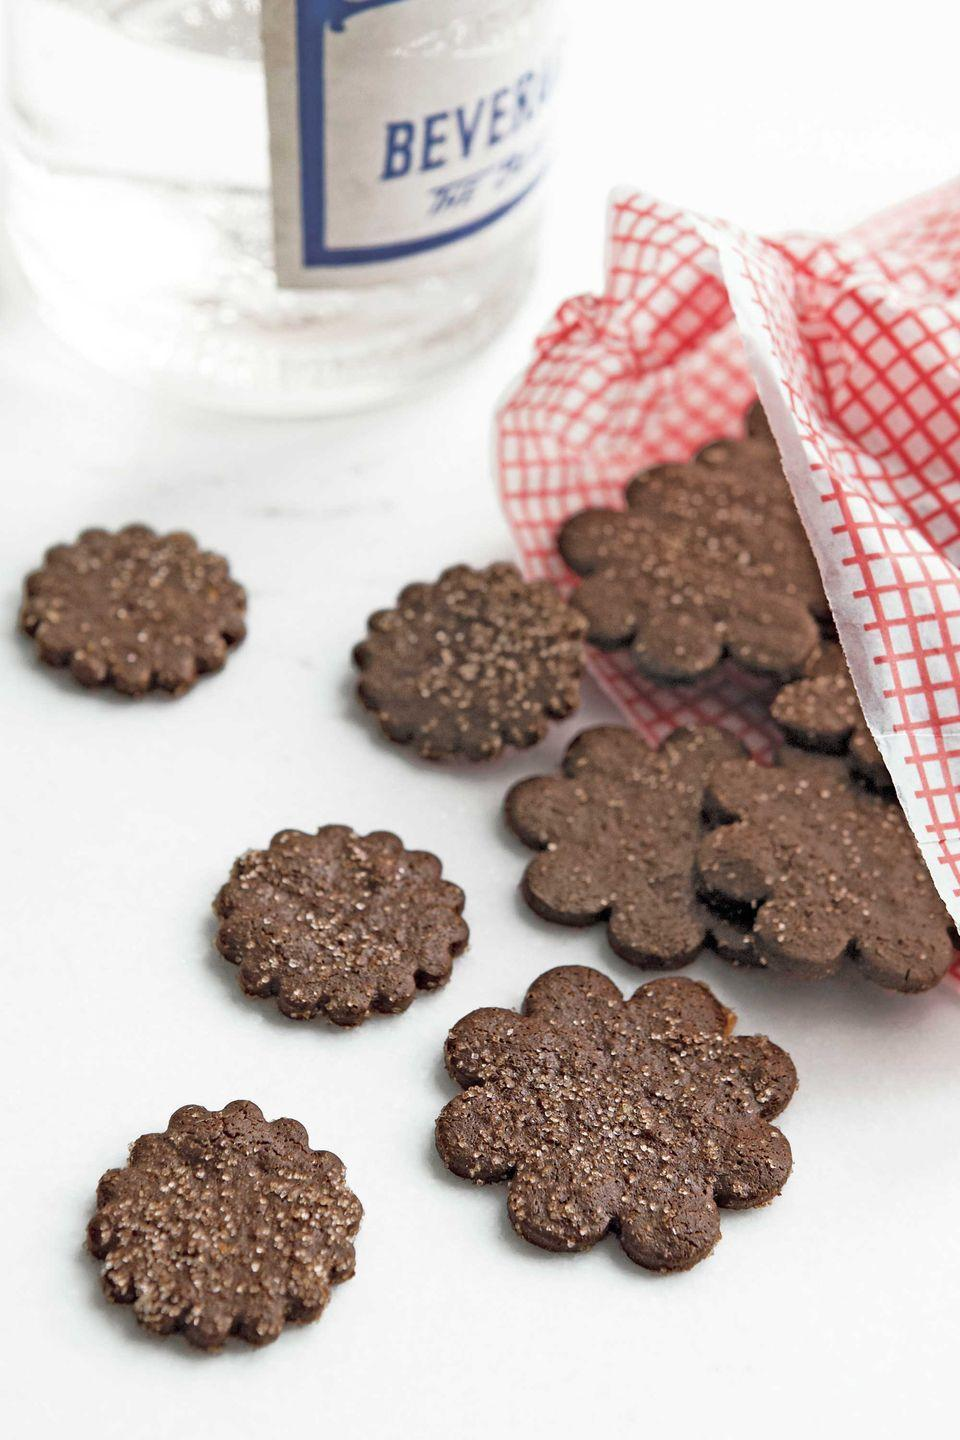 "<p>Semisweet chocolate chips, light-brown sugar, and Dutch-processed cocoa powder yield a refined richness.</p><p><a href=""https://www.countryliving.com/food-drinks/recipes/a4007/chocolate-coins-recipe-clx1211/?click=recipe_sr"" rel=""nofollow noopener"" target=""_blank"" data-ylk=""slk:Get the recipe."" class=""link rapid-noclick-resp""><strong>Get the recipe.</strong></a></p>"